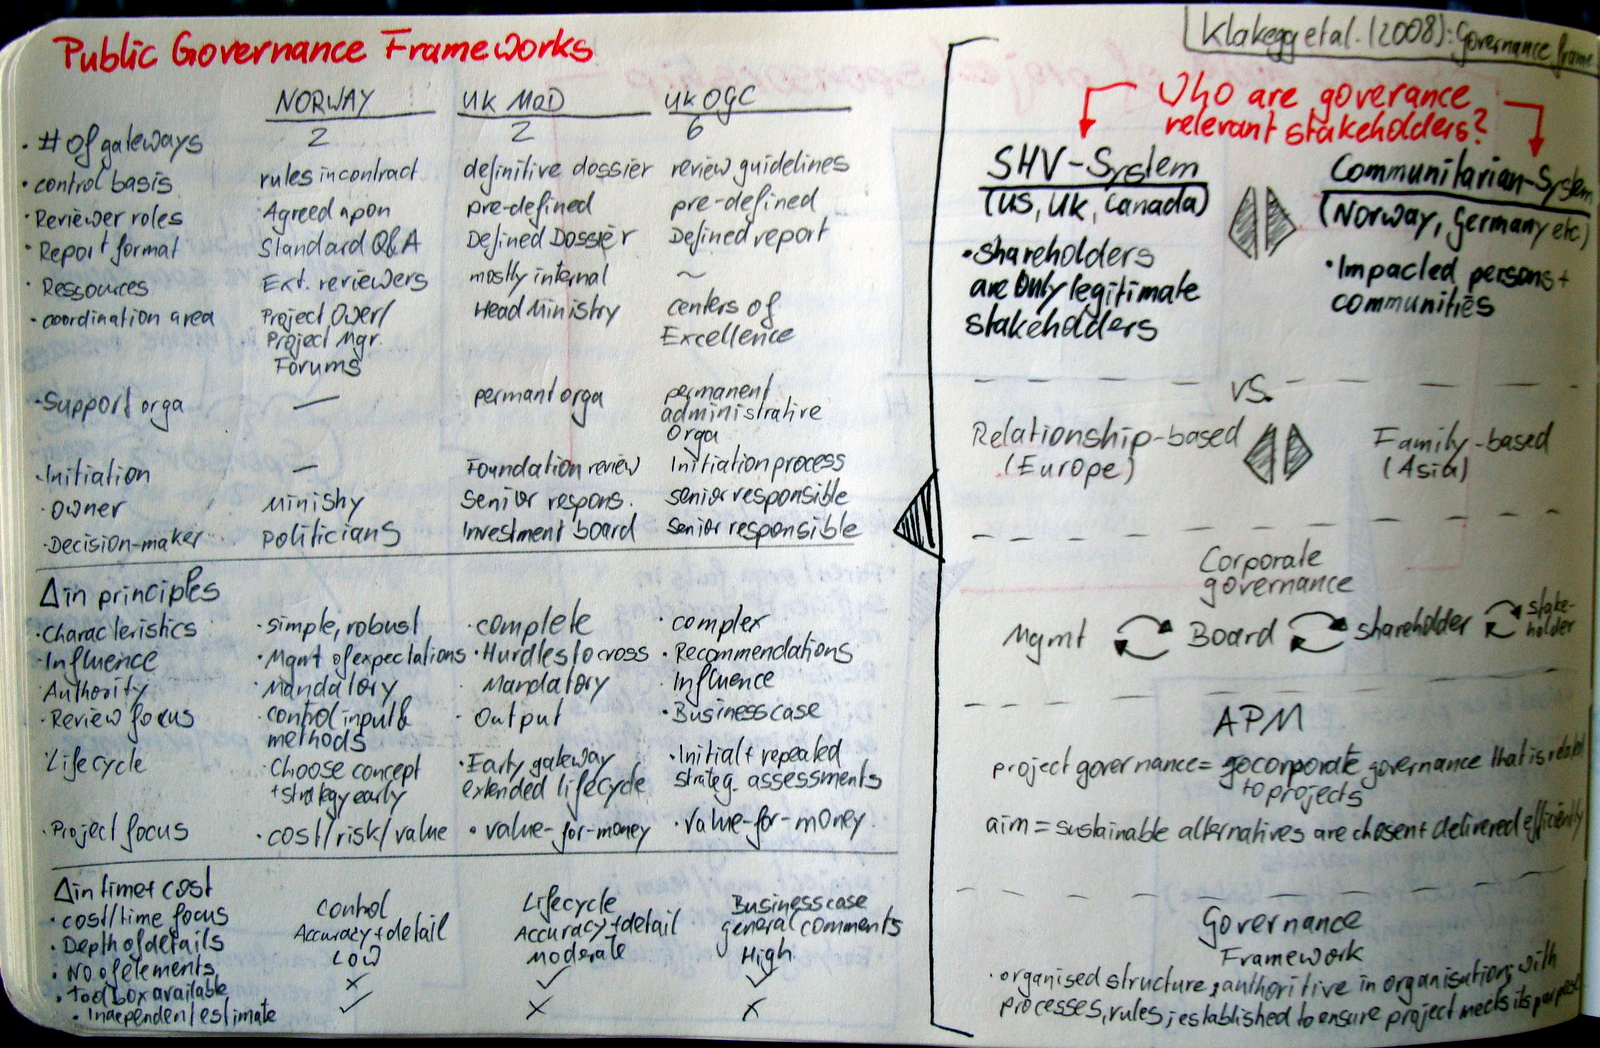 Governance Frameworks for Public Project Development and Estimation (Klakegg et al., 2008)